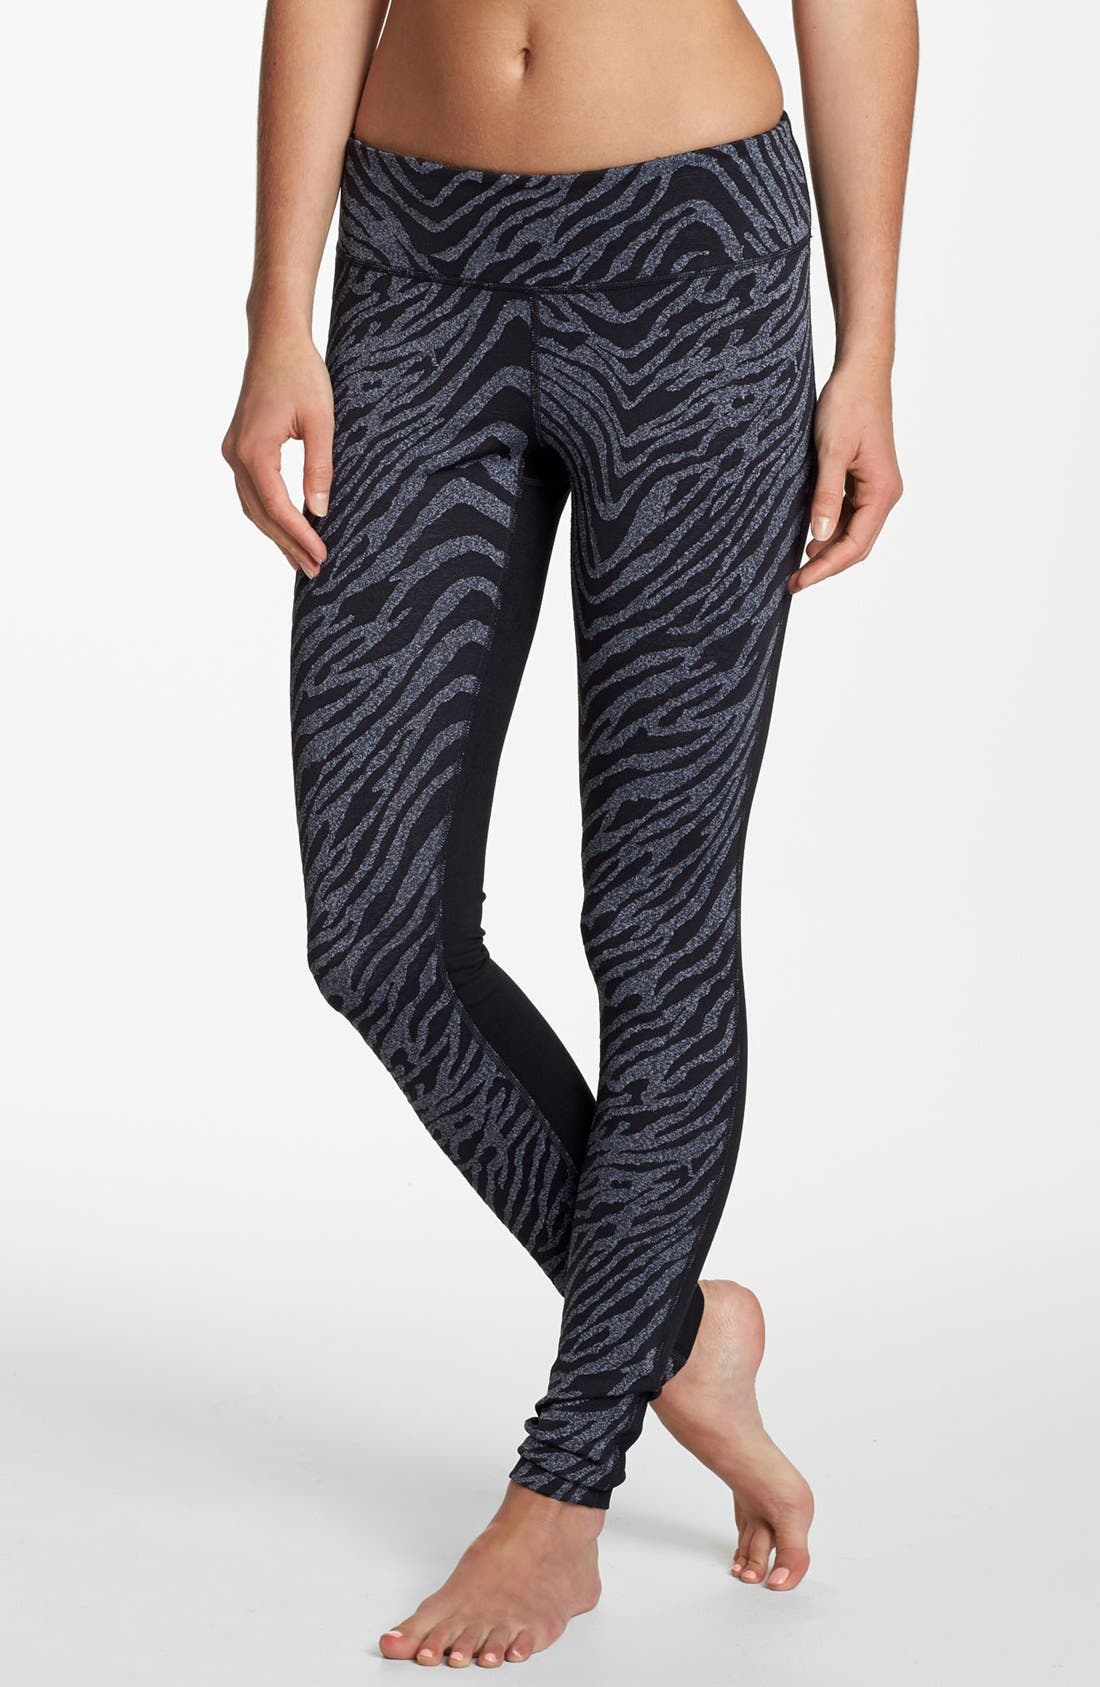 Alternate Image 1 Selected - Zella 'Live In' Zebra Print Leggings